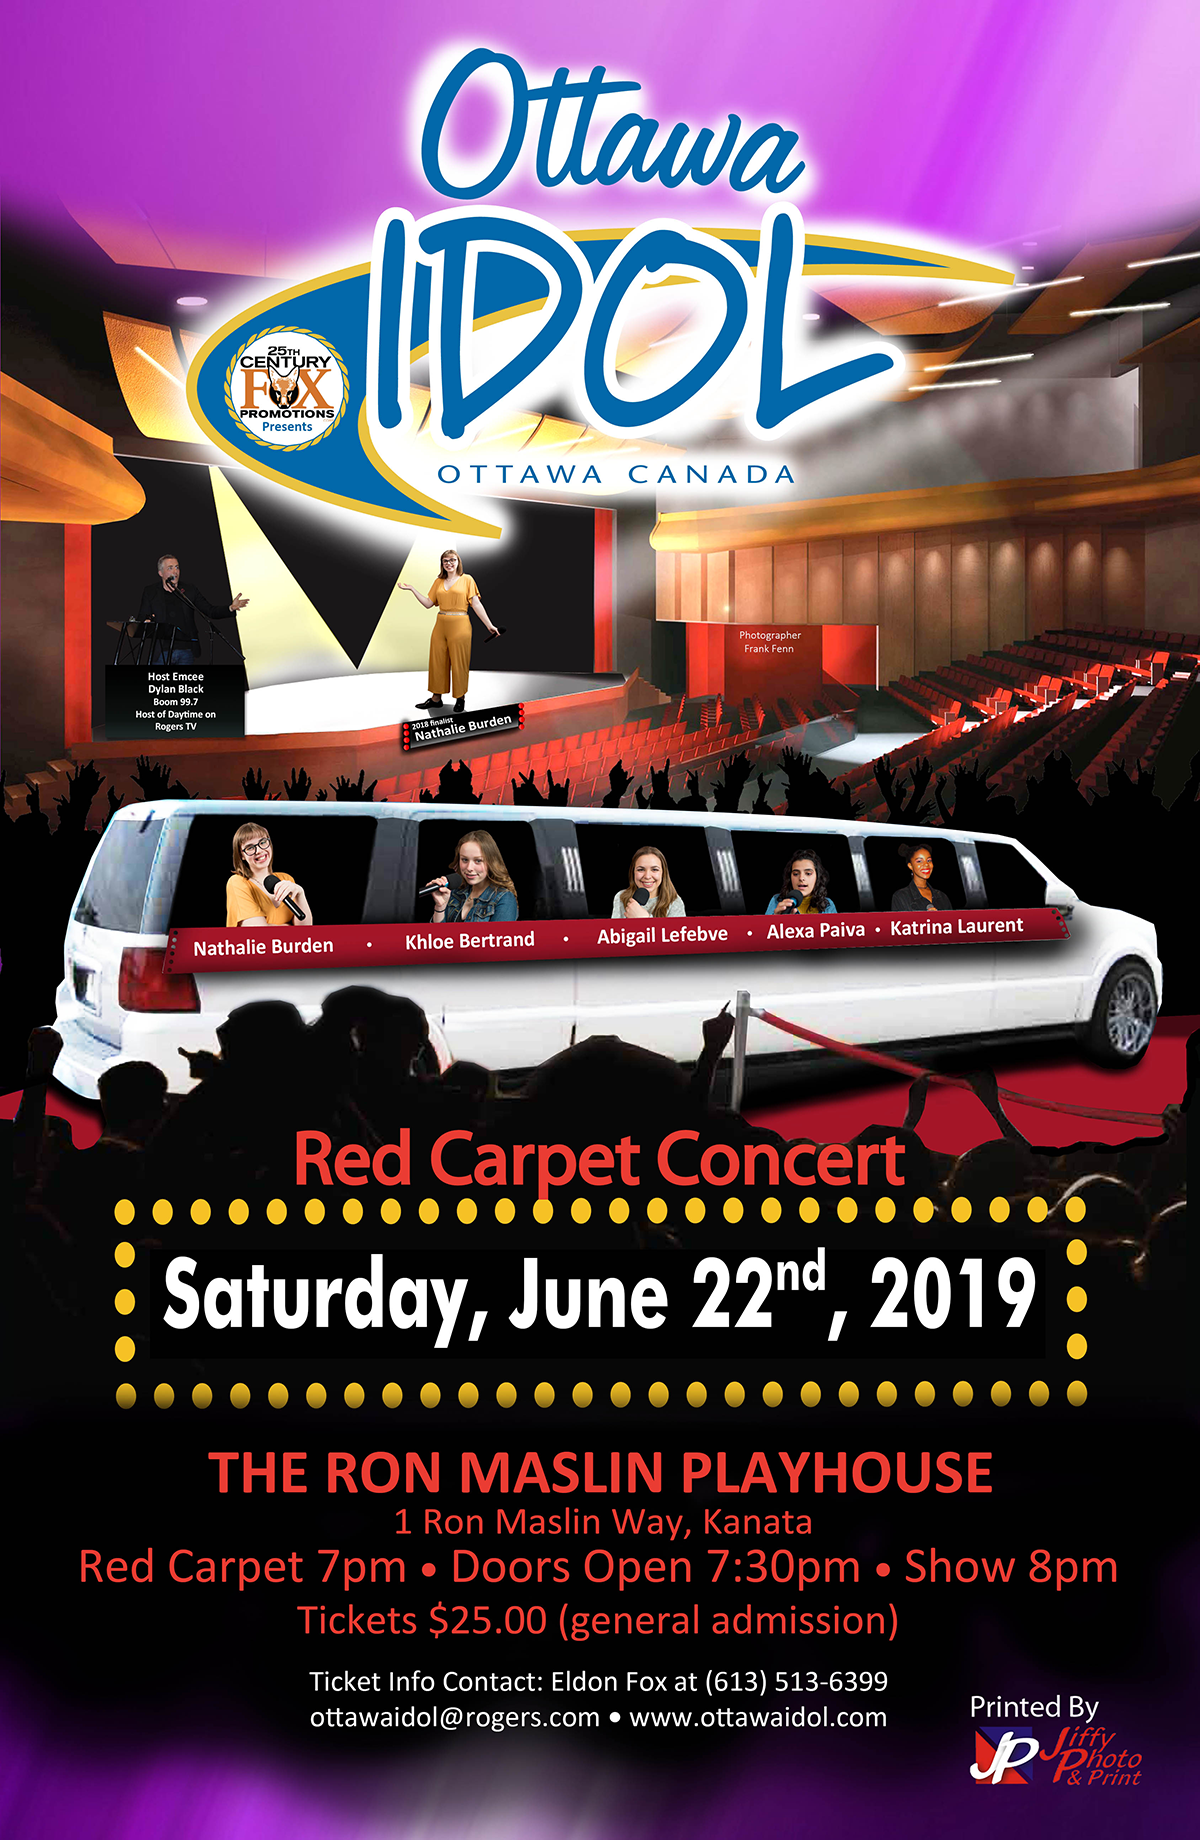 Ottawa-Idol-2019_Red-Carpet-Concert-poster_02[1378].png